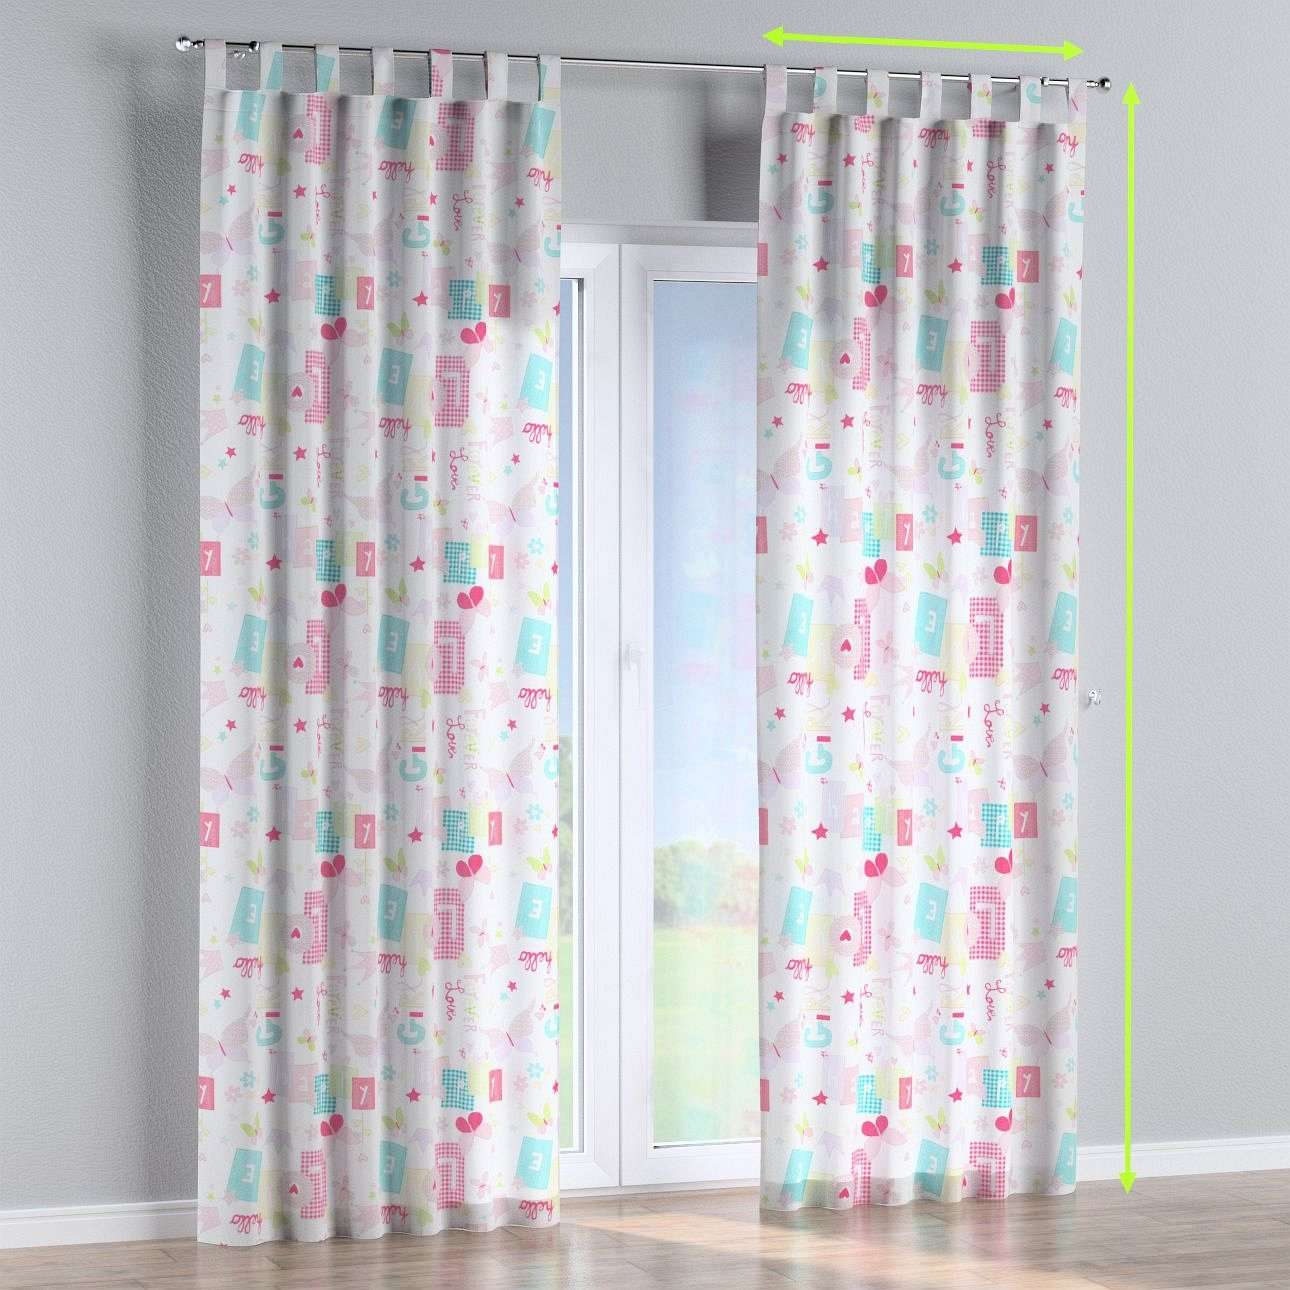 Tab top lined curtains in collection Little World, fabric: 141-51